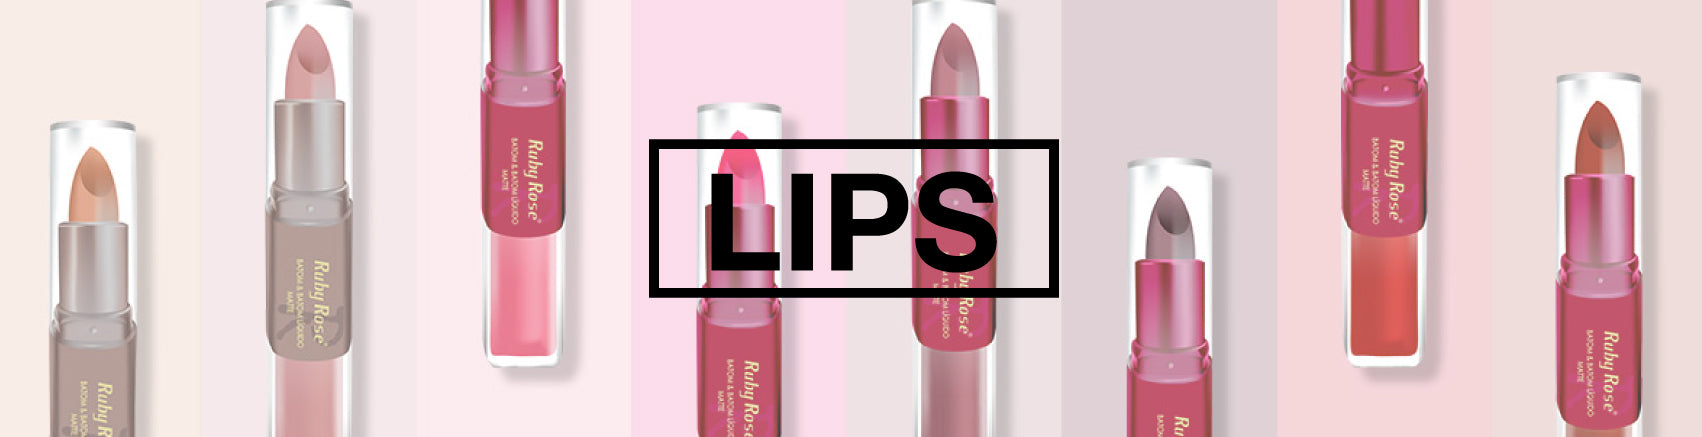 lips ruby rose makeup lebanon delivery online